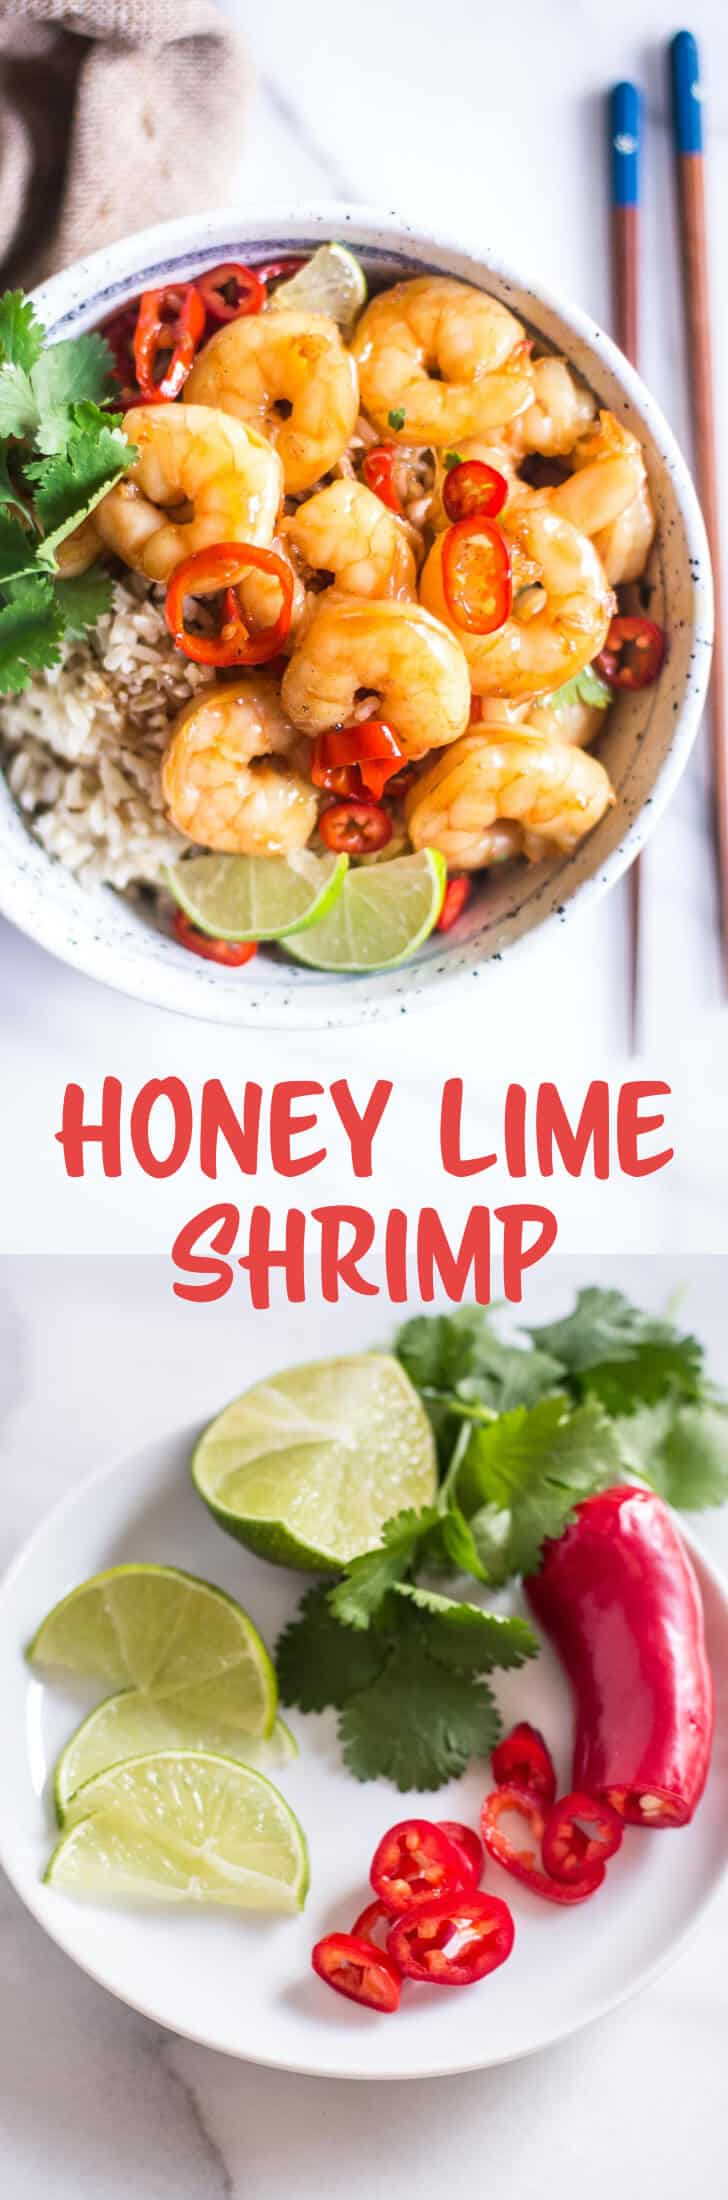 Honey Lime Shrimp - A sweet and savory sauce coats shrimp in this super fast dinner that comes together in under 15 minutes. Enjoy the shrimp in rice bowls, tacos or salads!